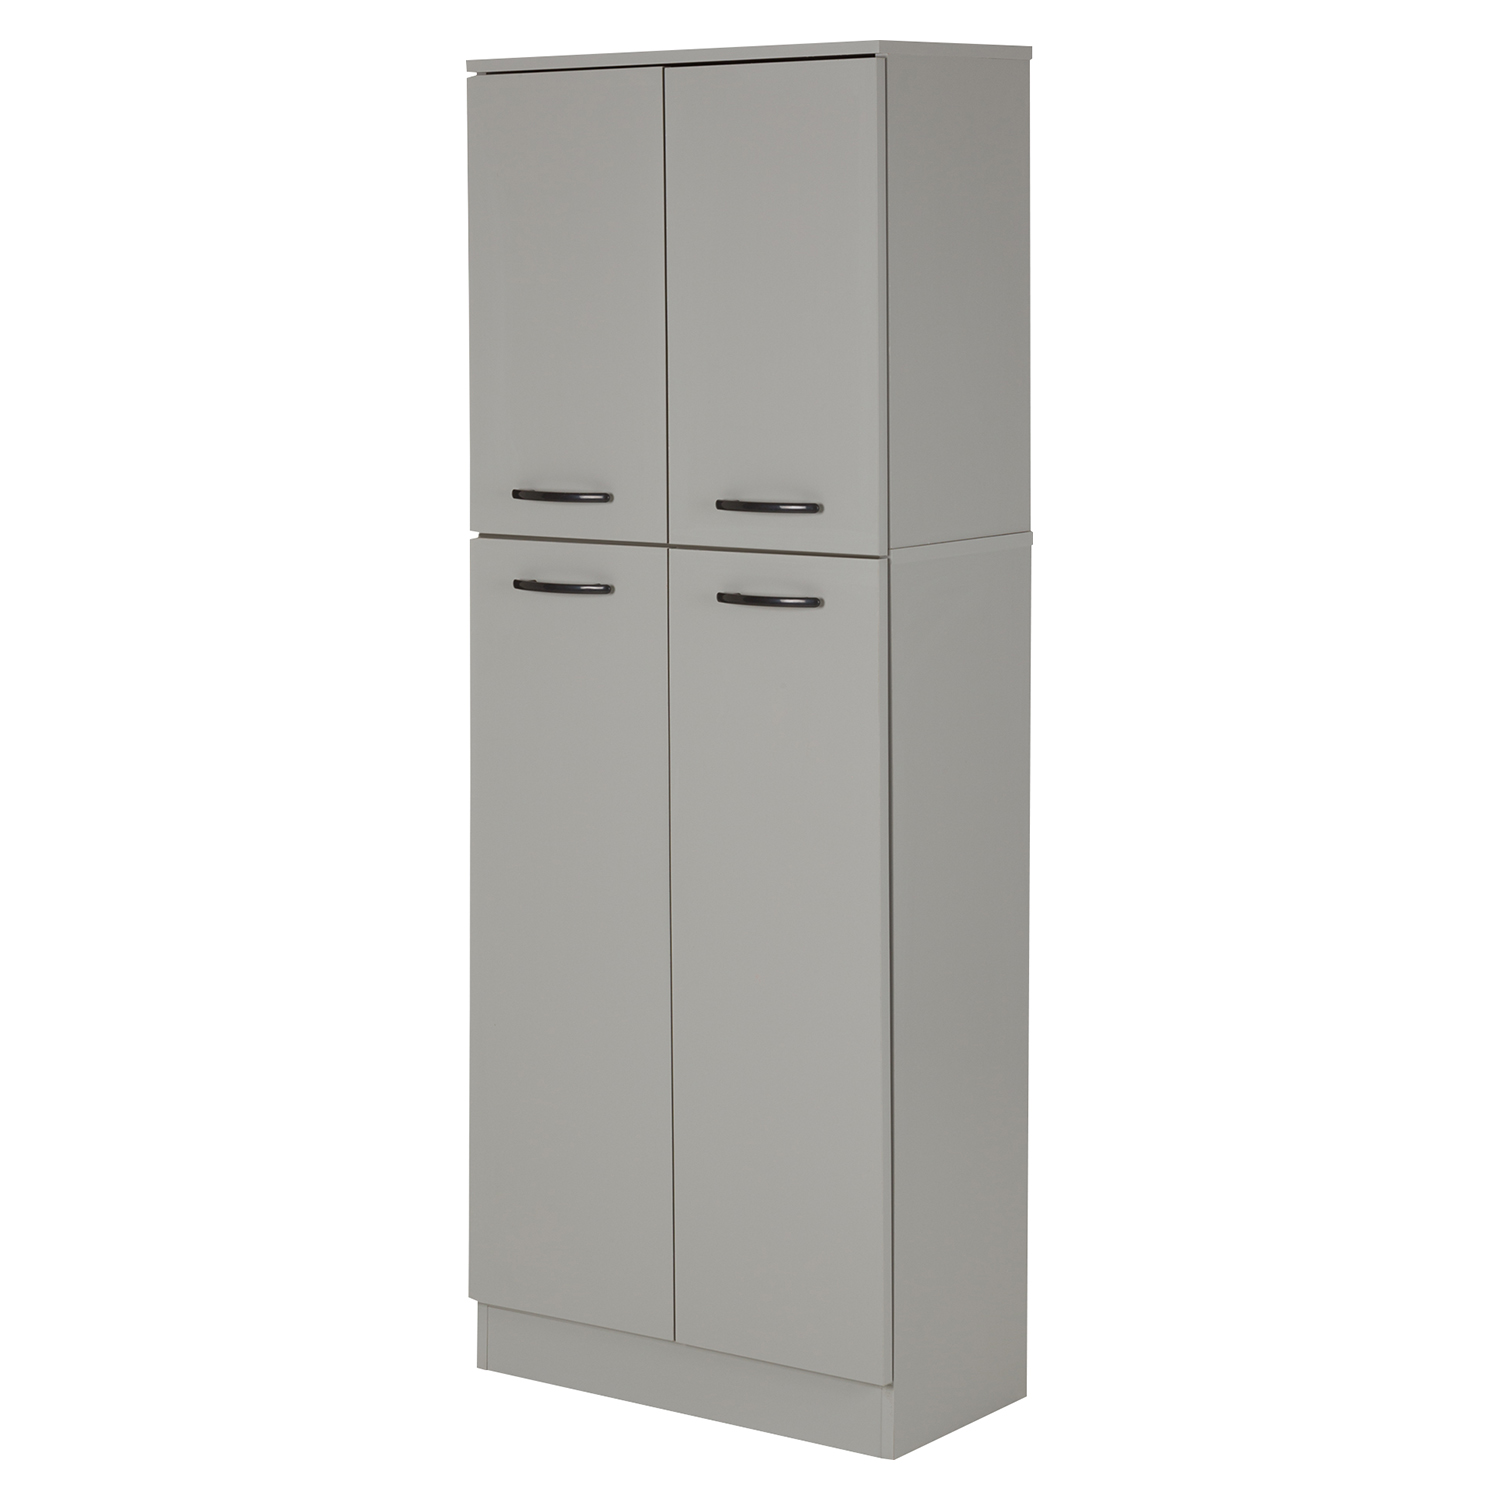 Axess 4 Doors Storage Pantry - Soft Gray - SS-10104